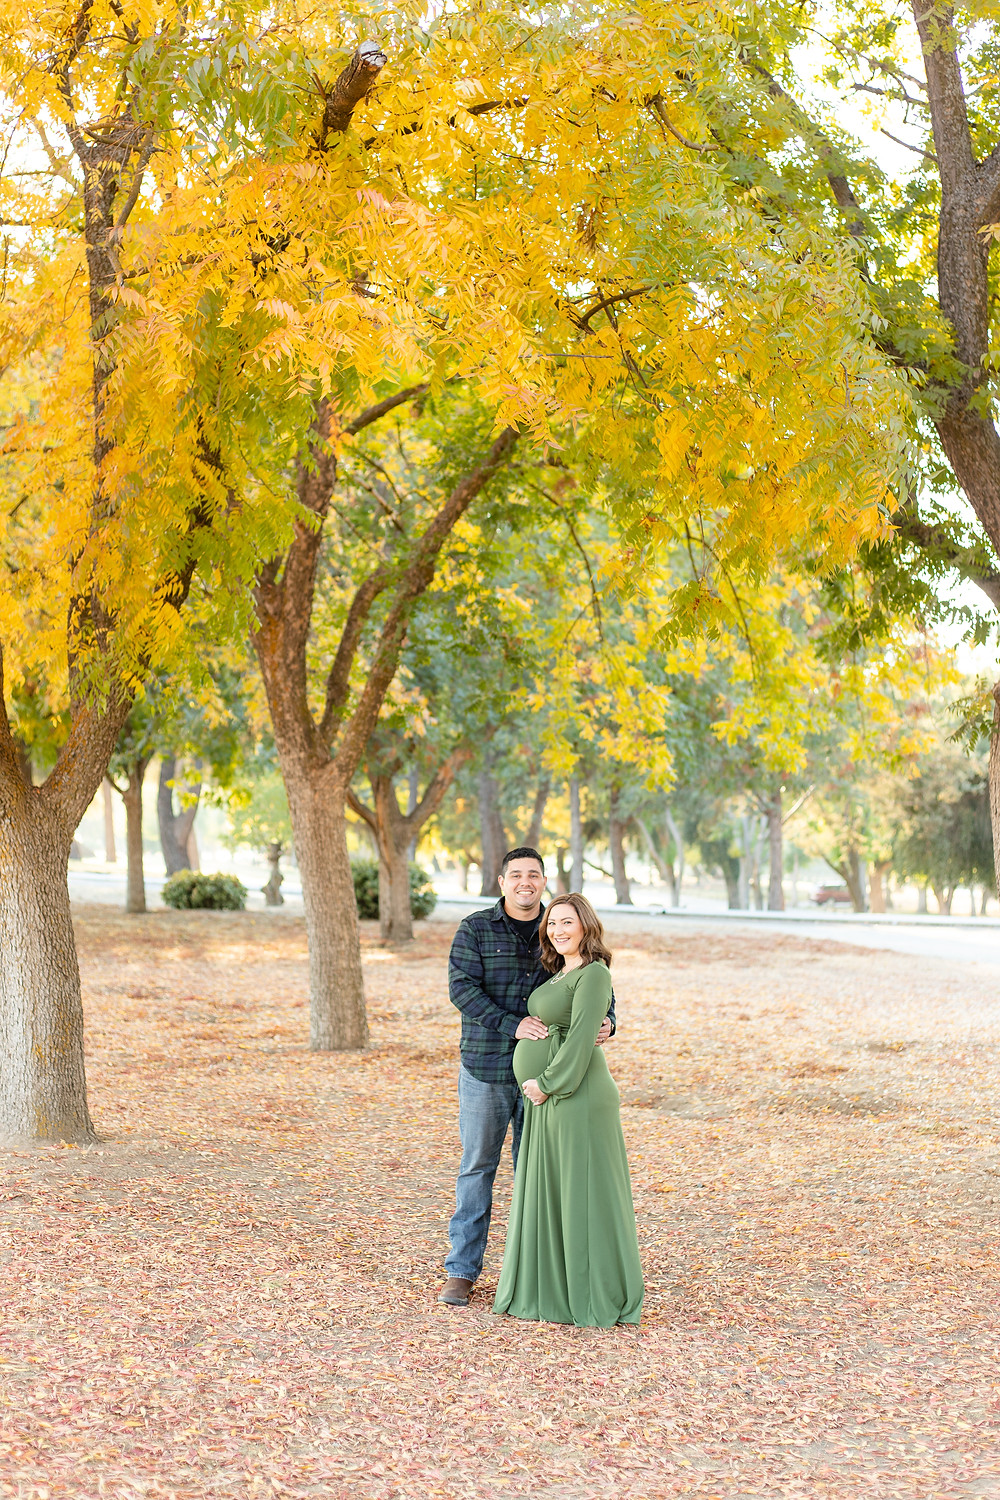 A maternity session in Fresno, CA by Ashley Norton Photography.